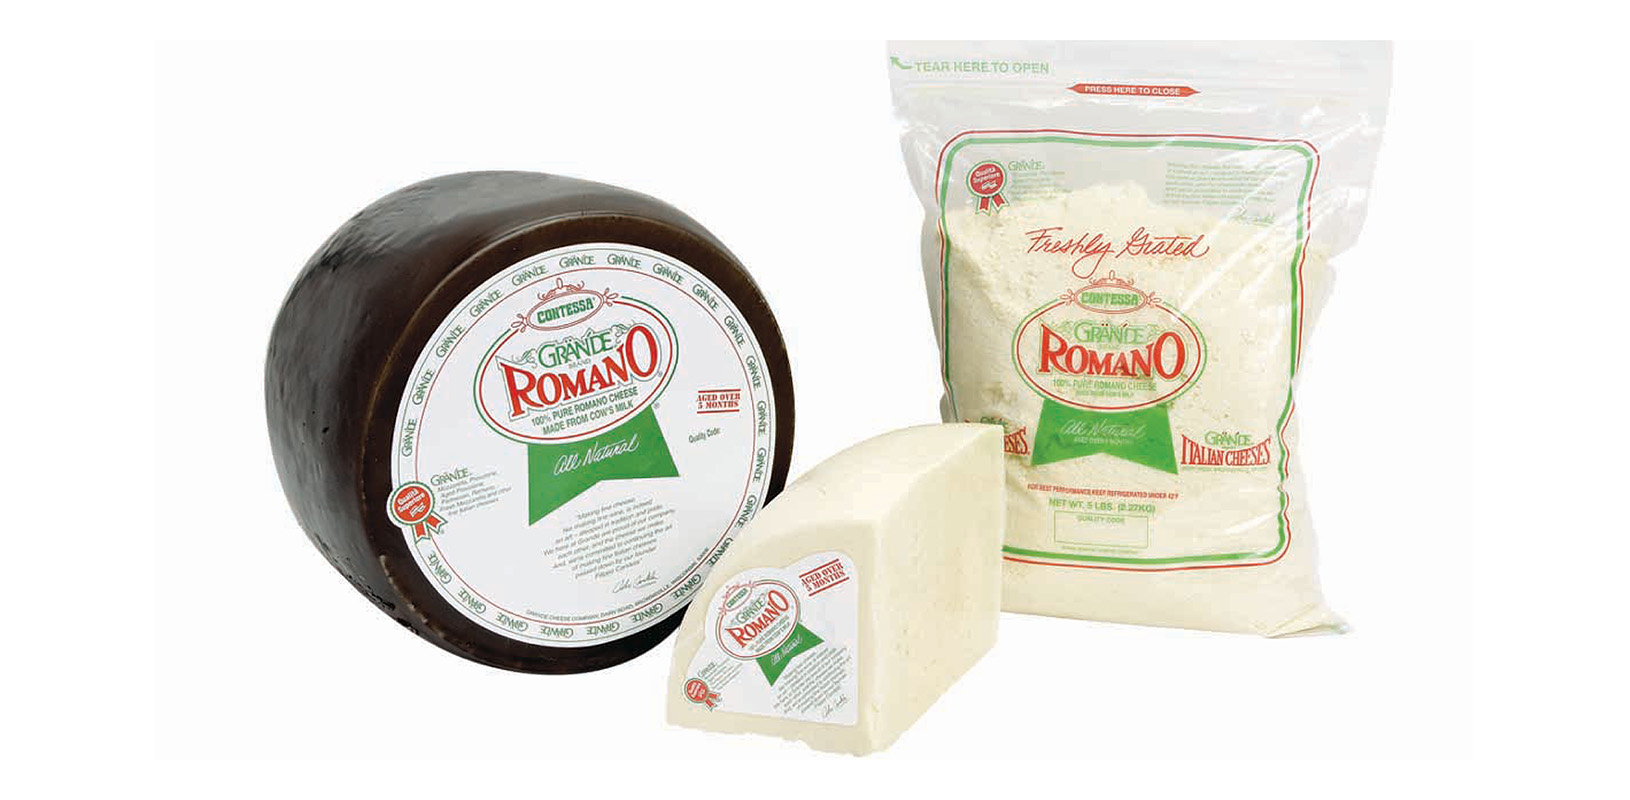 Romano Cheese Family Image